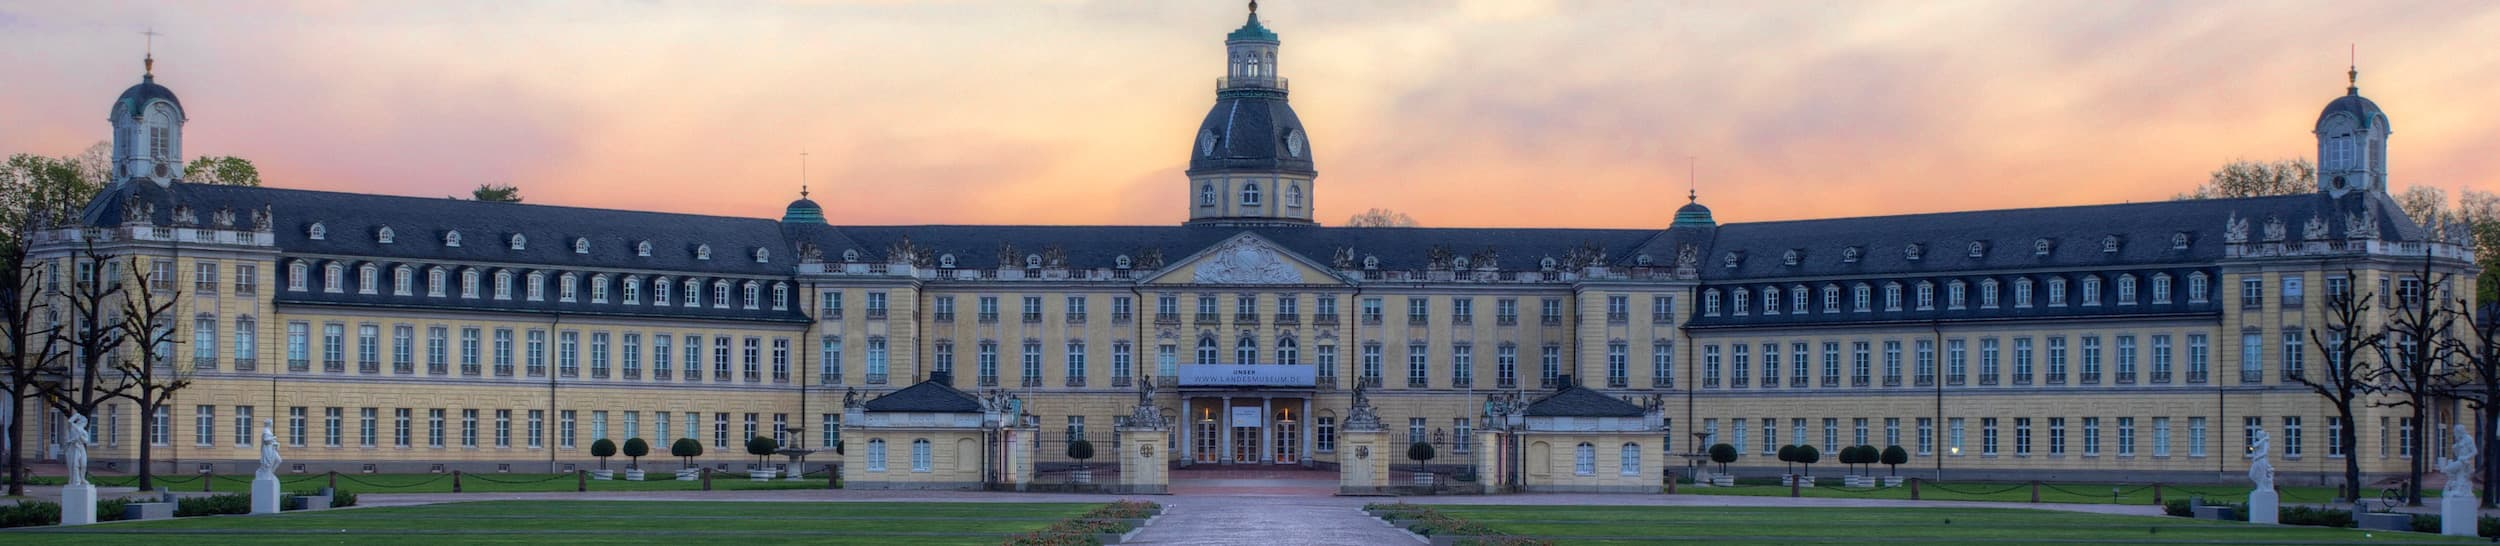 A picture of Karlsruhe by Christian Reimer